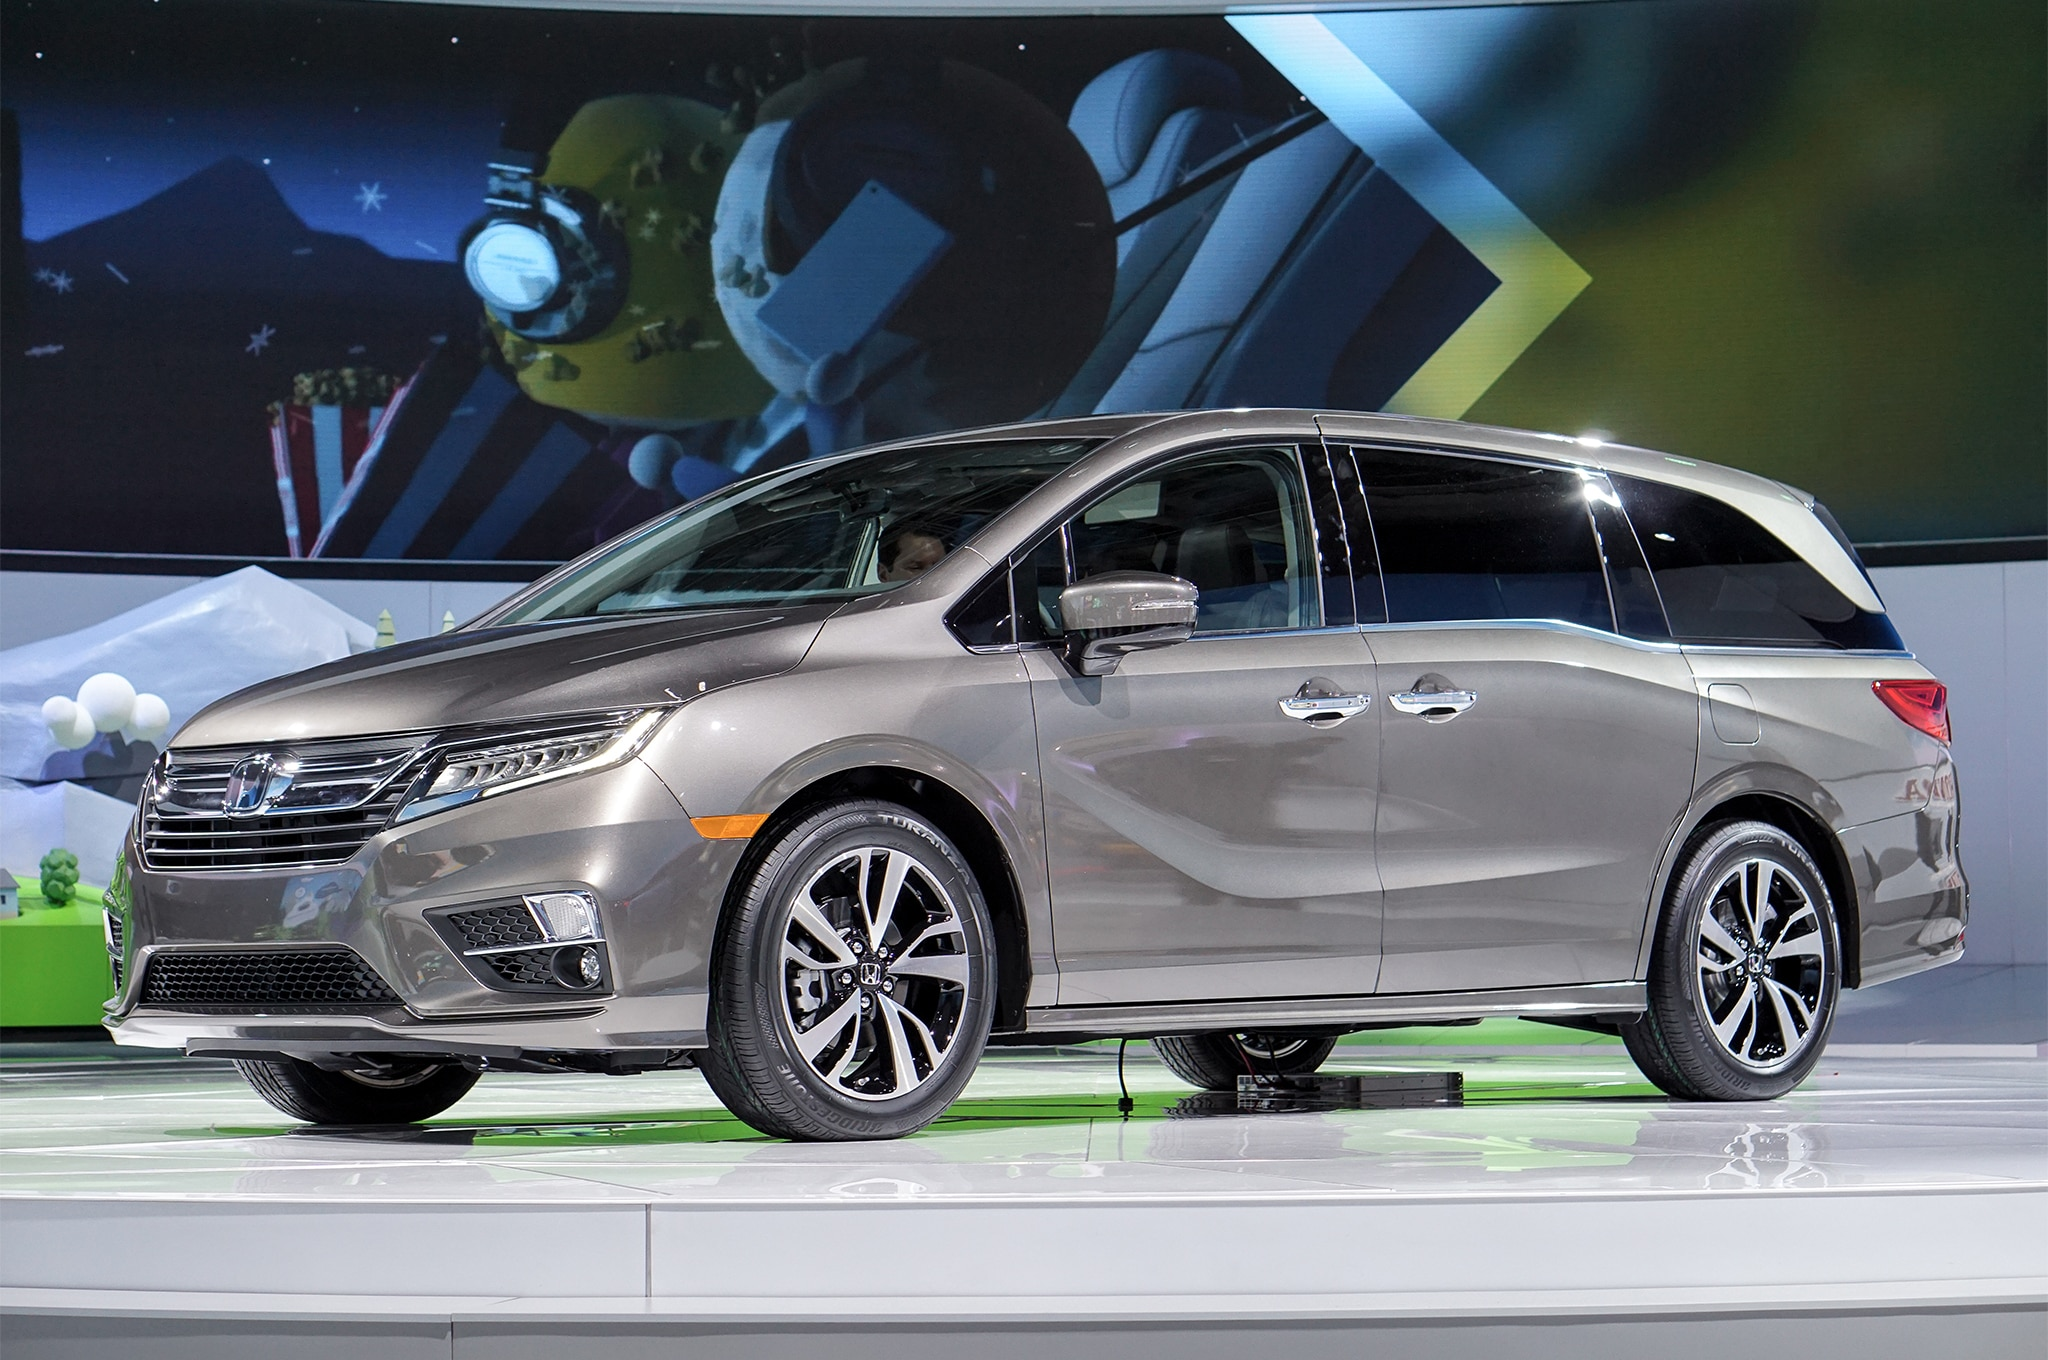 New Honda Odyssey >> 10 Things You Didn't Know About the 2018 Honda Odyssey | Automobile Magazine